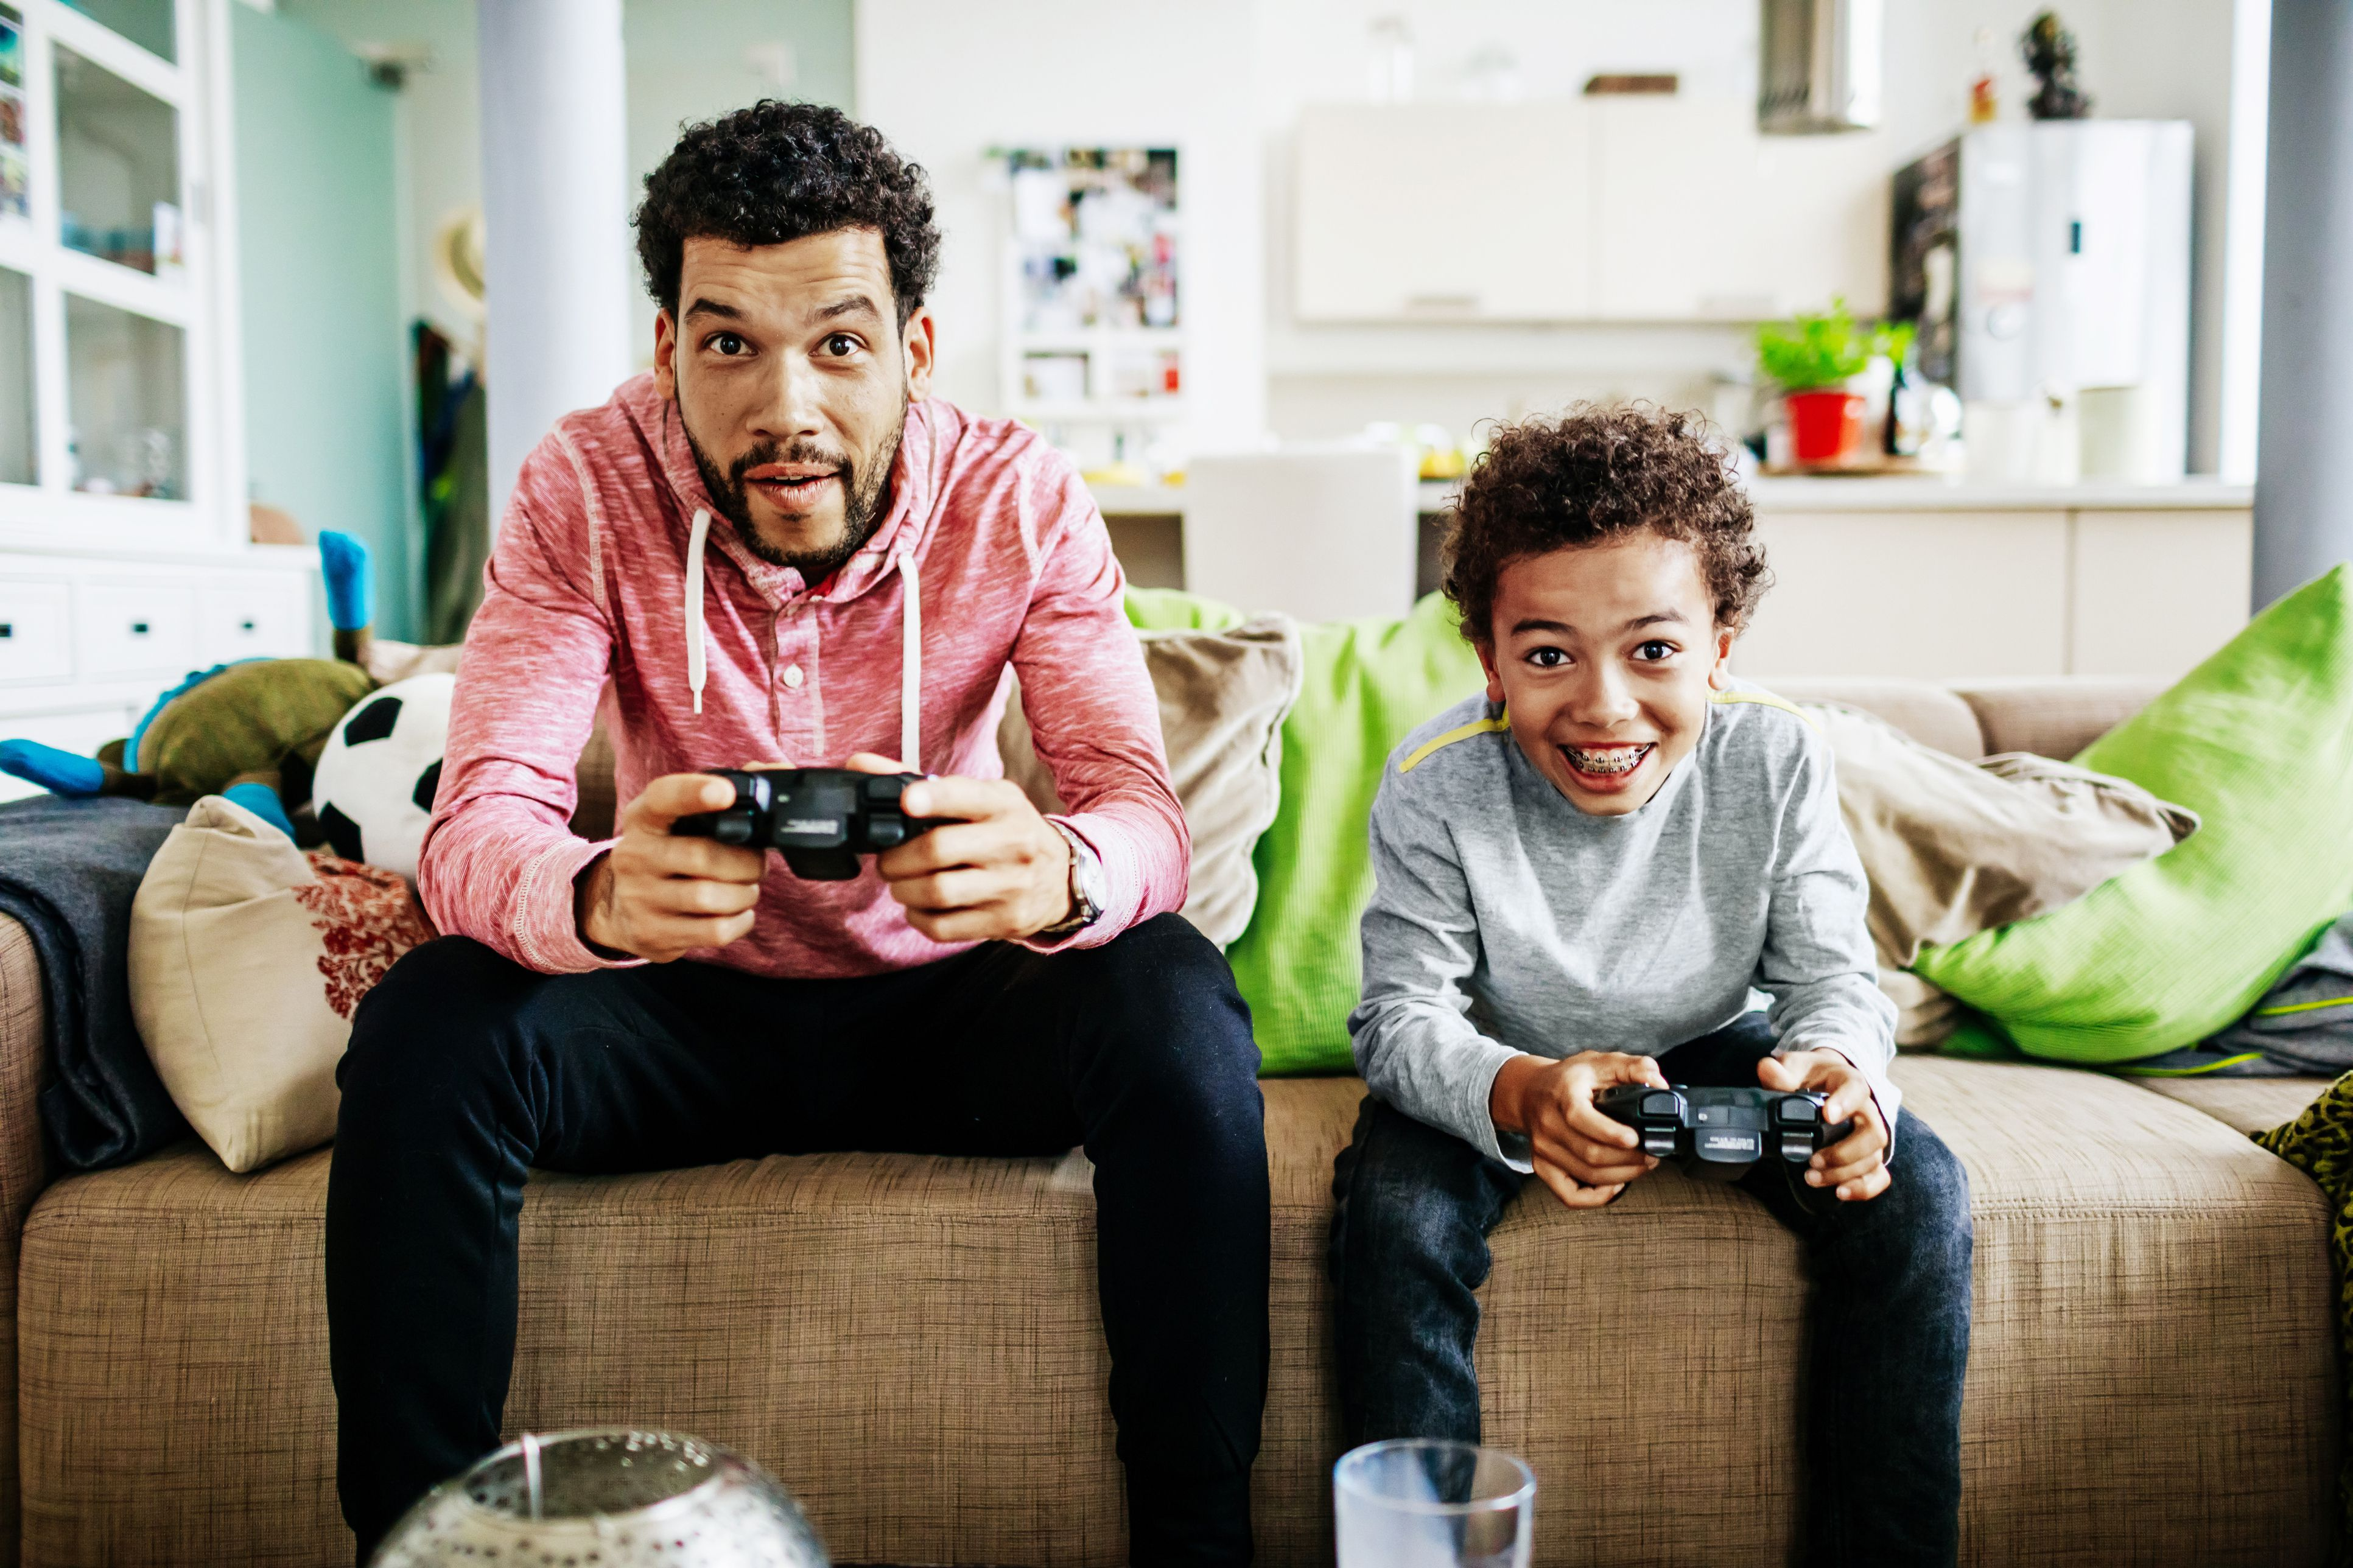 What Percent Of Kids Play Games